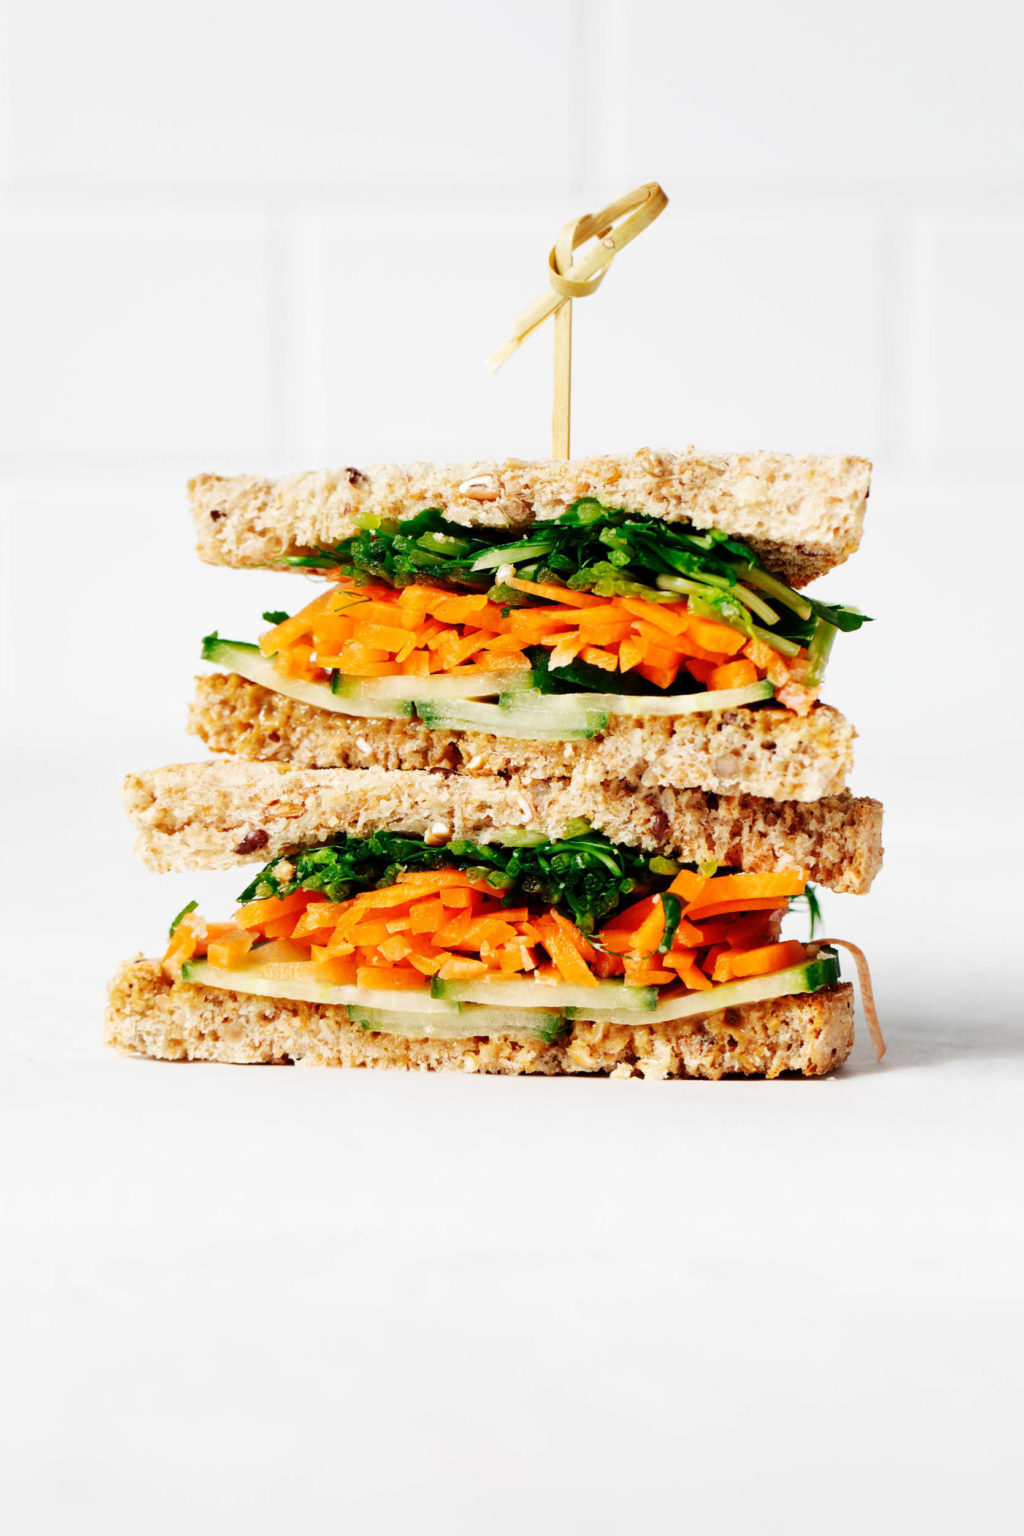 A sandwich has been assembled with layers of carrot, sprouts, and cucumber slices. It's resting on a white surface against a white brick backdrop.